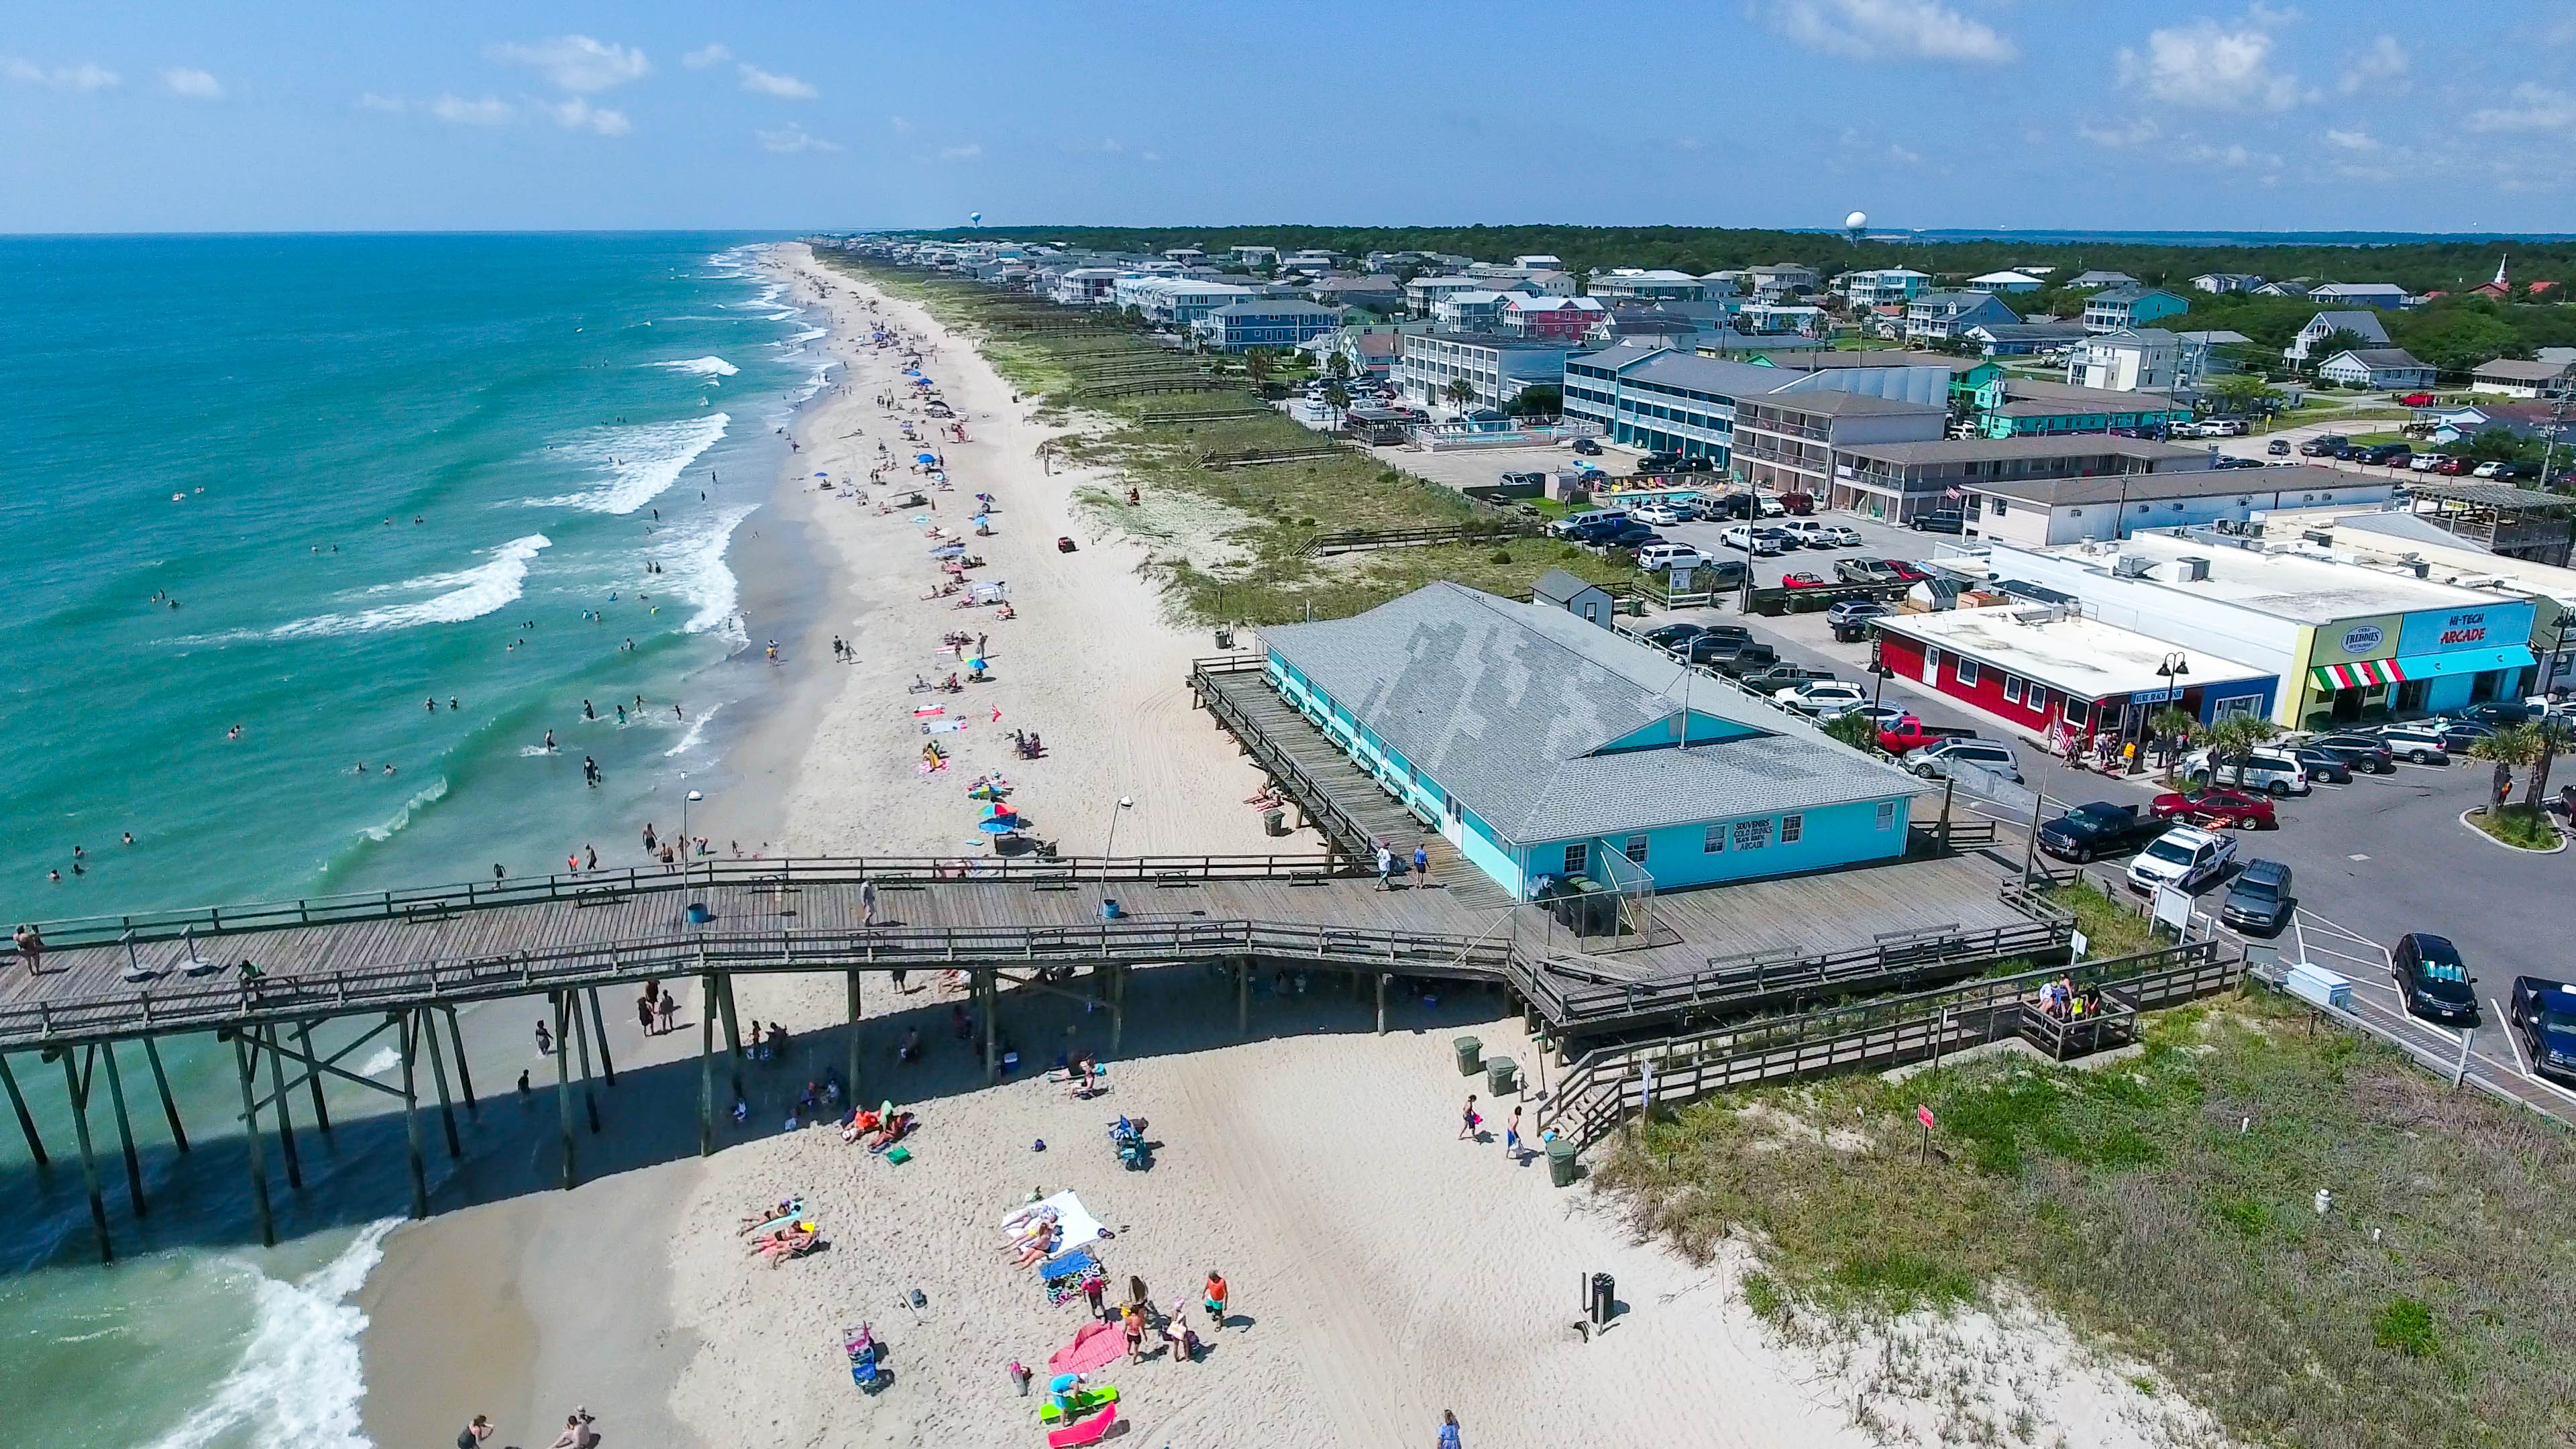 Fishing | Kure Beach, NC | Official Tourism Site